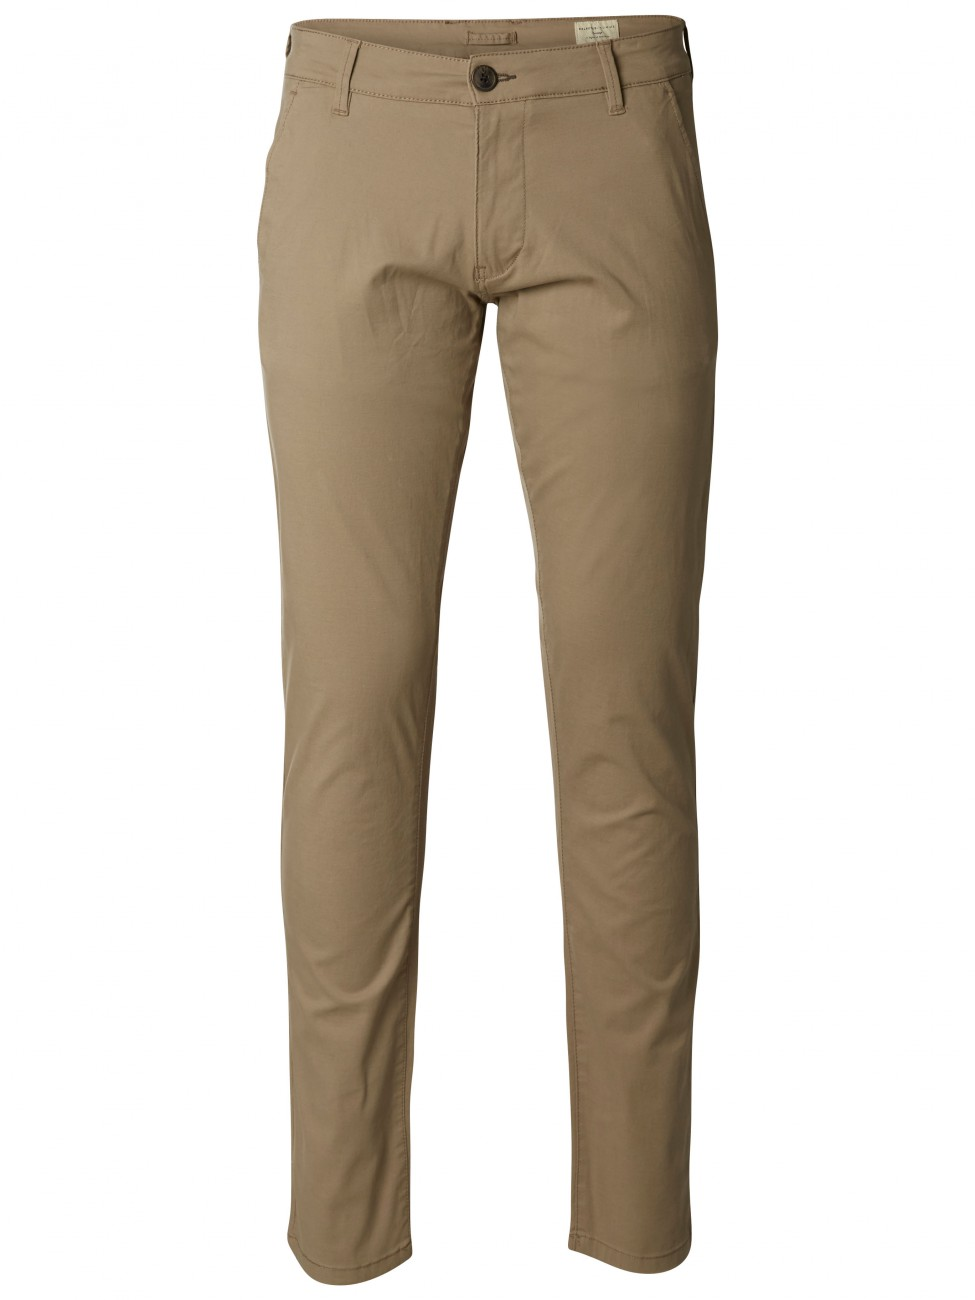 Selected Herren Chino Hose SHHTHREEPARIS - Greige